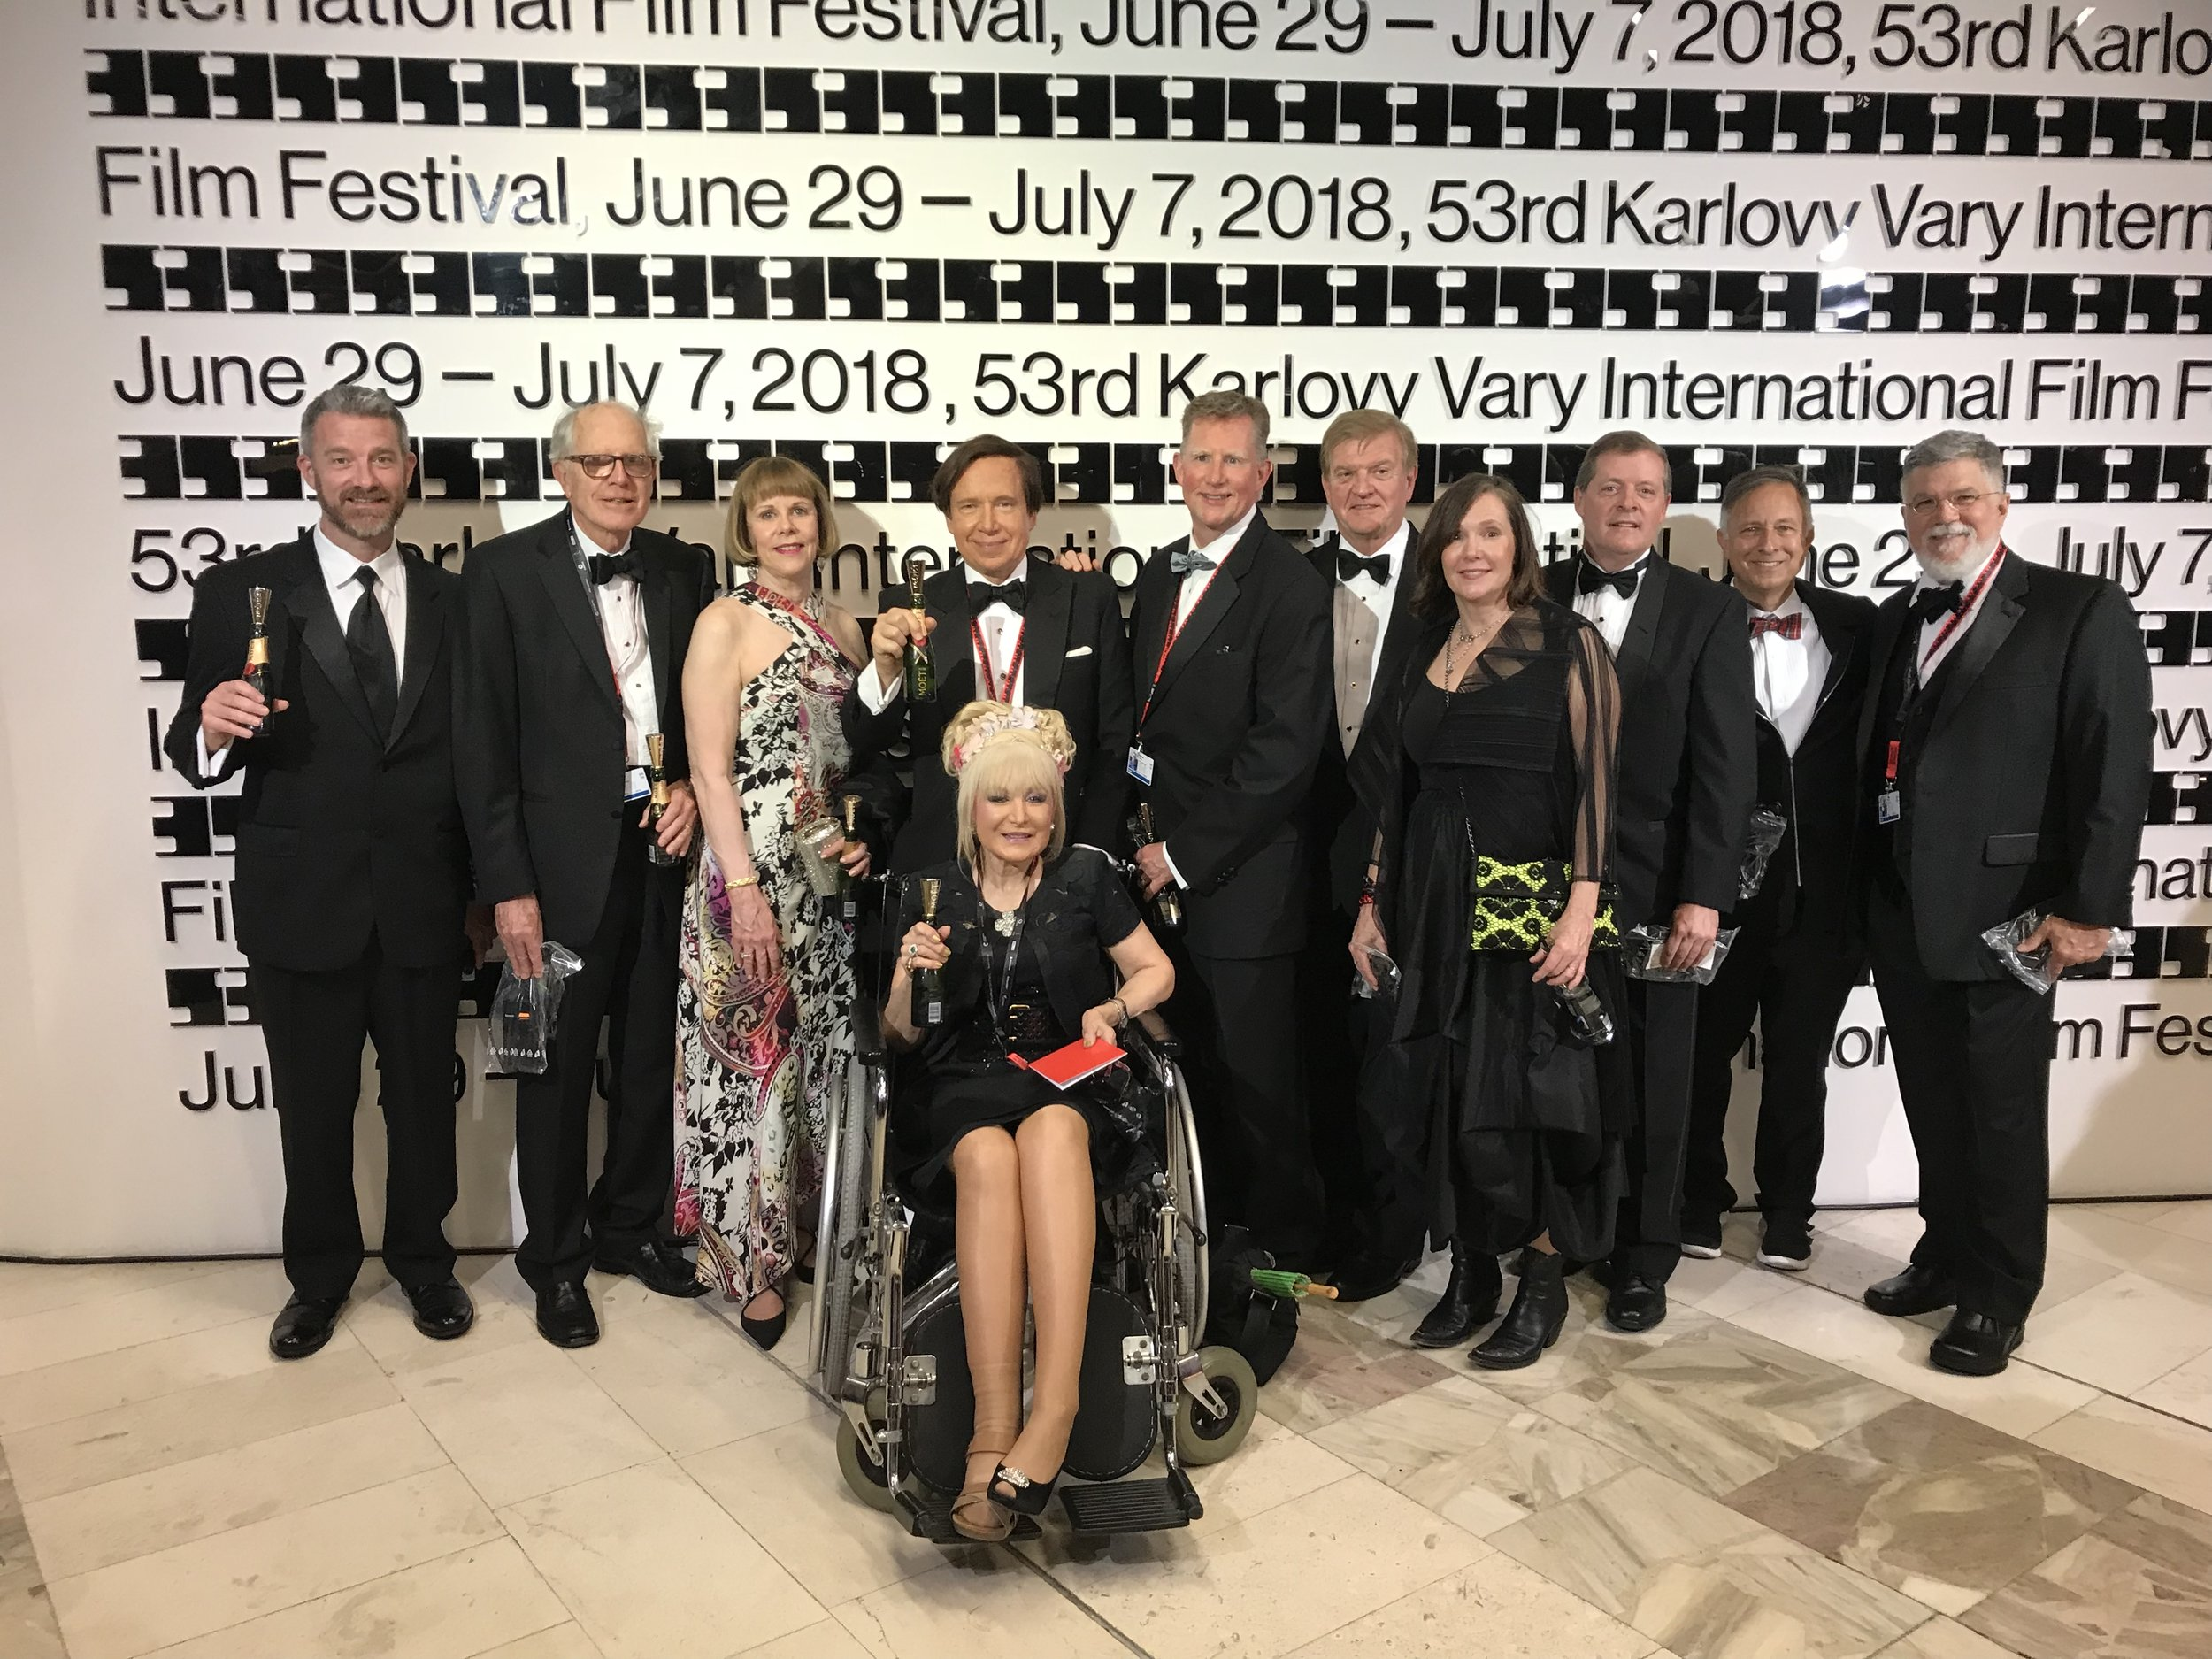 At the Glittering Black-Tie 53rd KVIFF Opening Ceremony. AFS Delegation participants from Texas, New York, Florida, and Michigan were there representing the worlds of Film, Architecture, Art, Law, Medicine, Entertainment, and Finance.